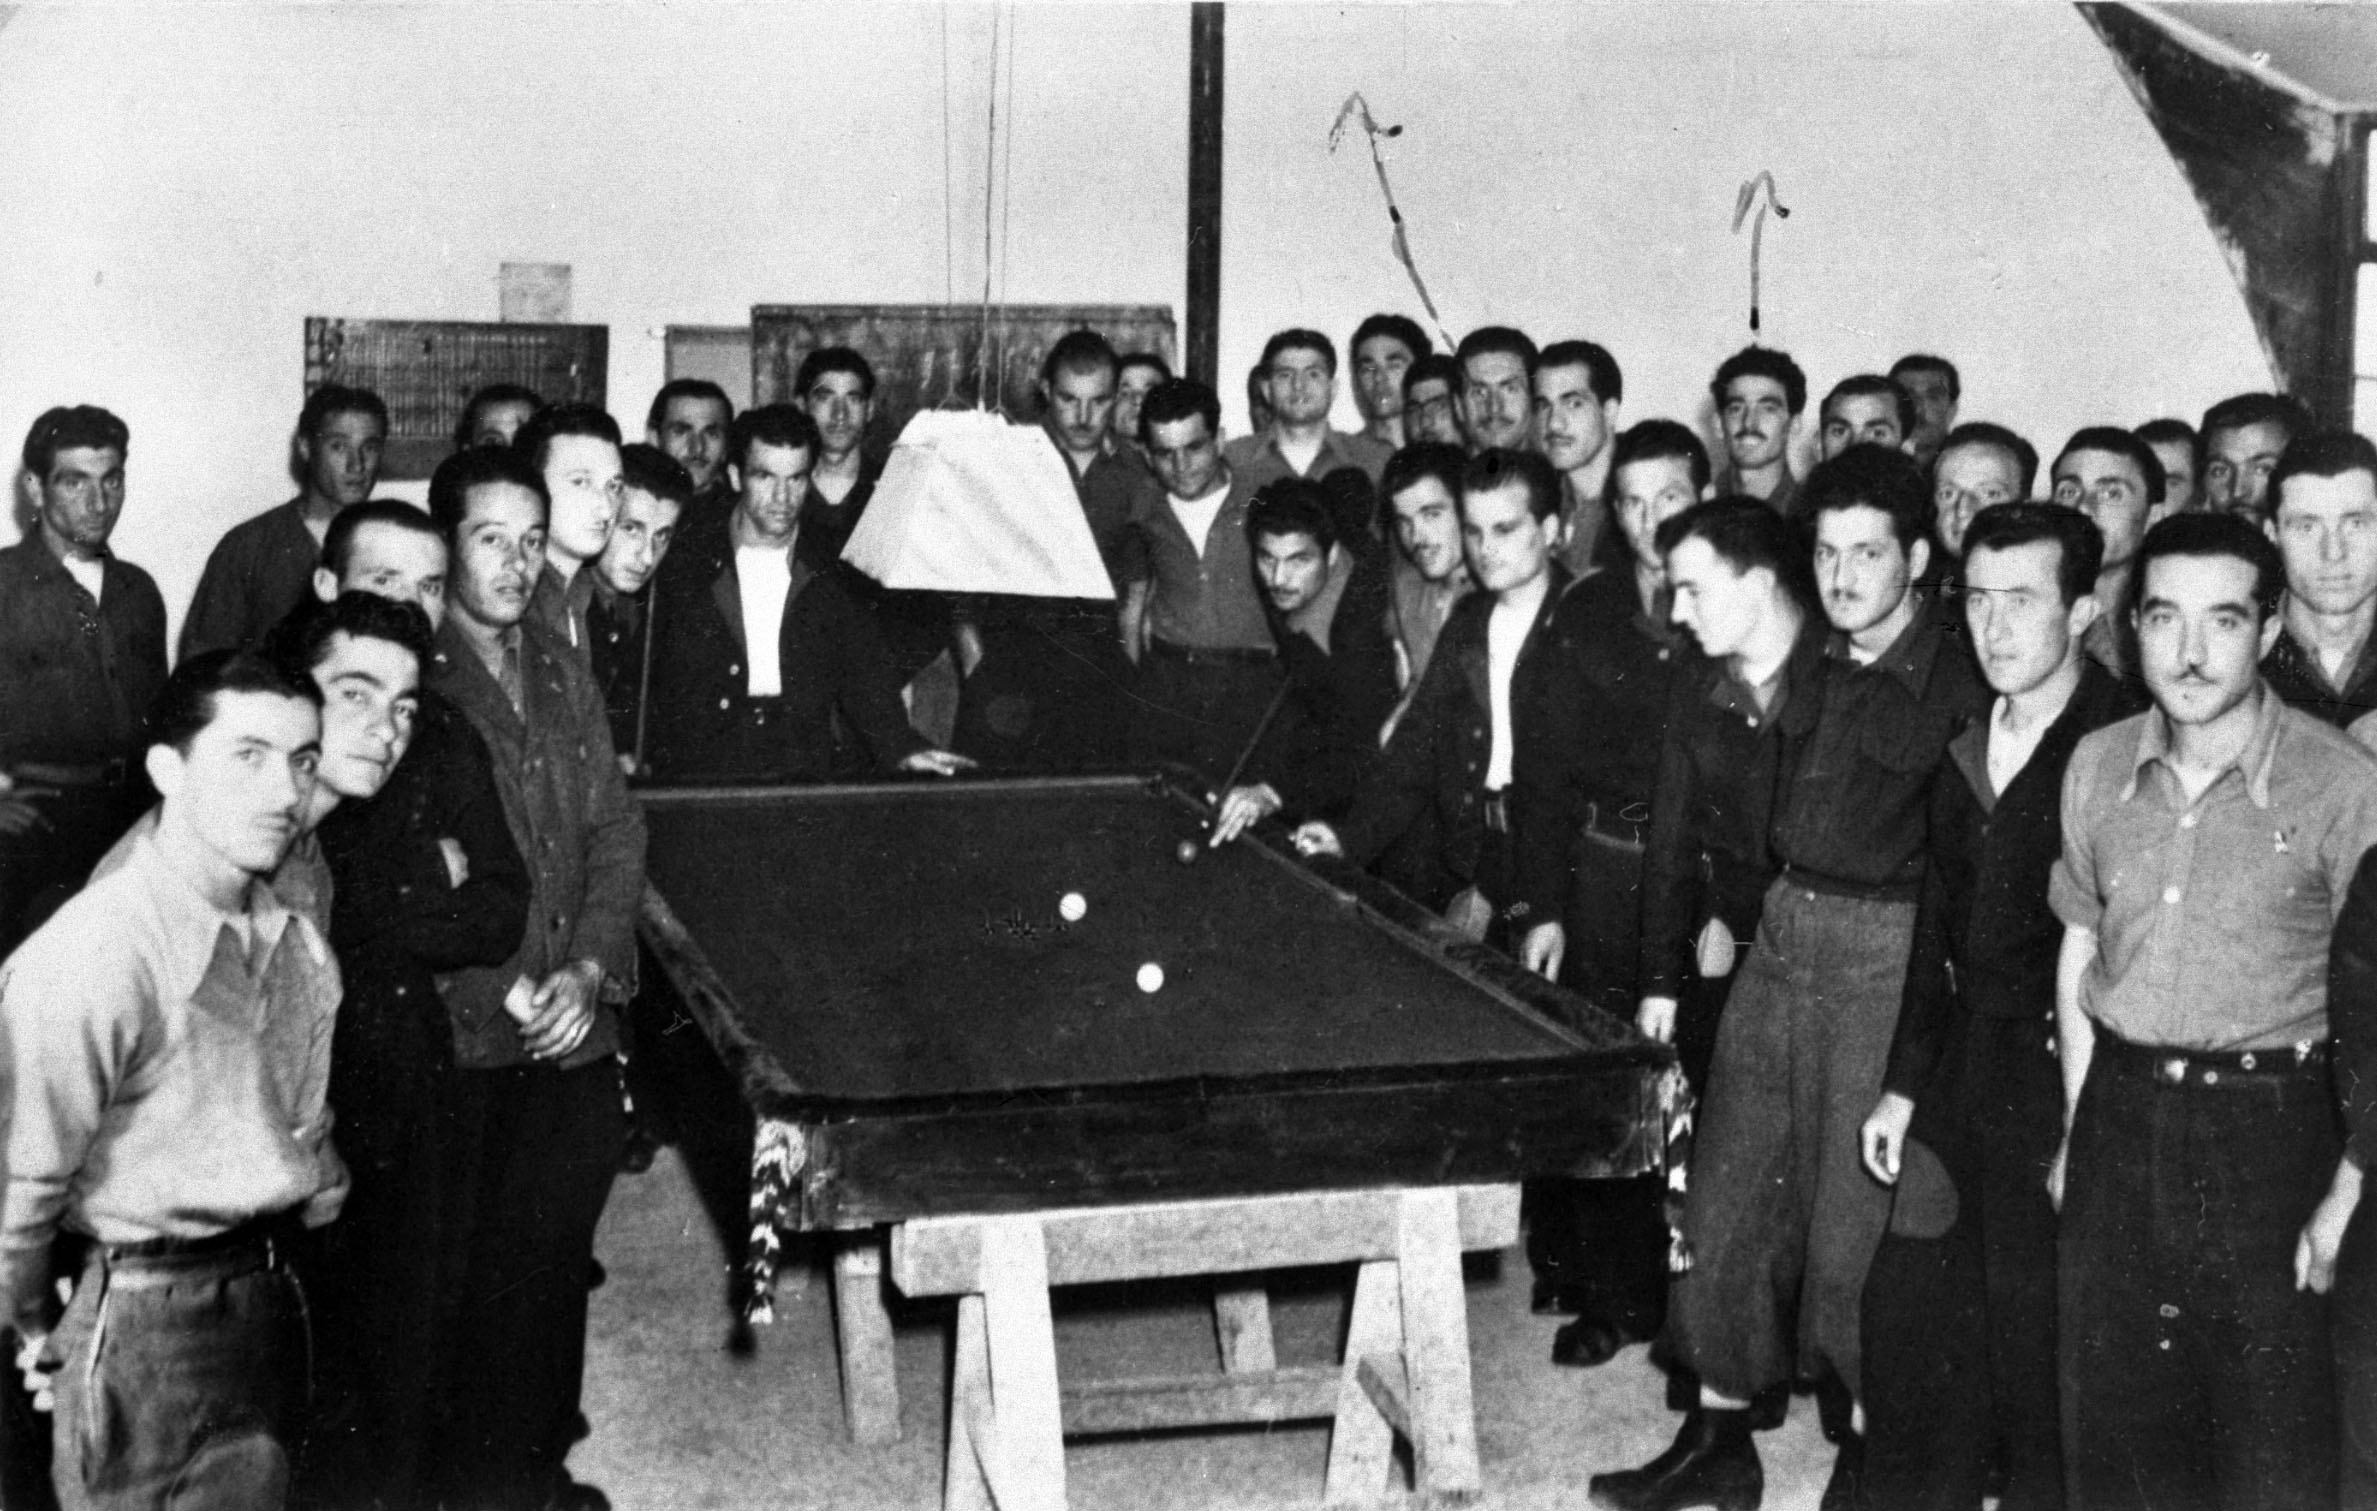 A concrete billiards table made by WWII POWs from Italy in Scotland's Orkney Islands.